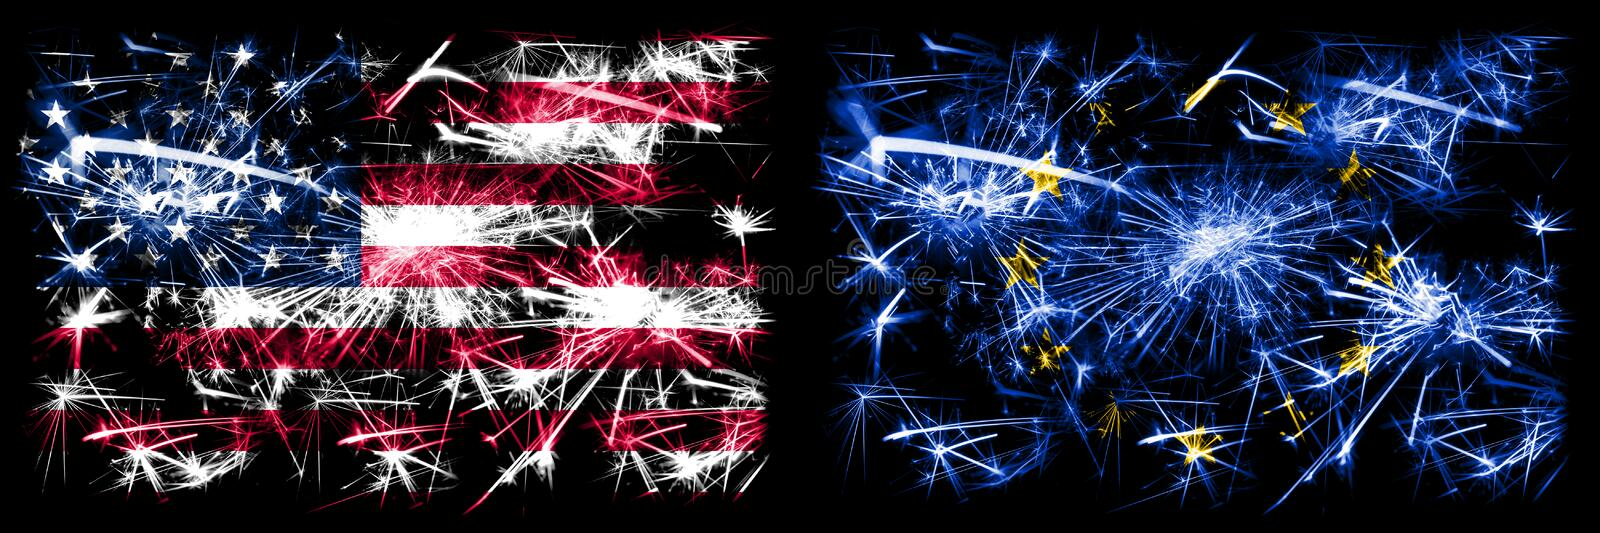 United States of America, USA vs European Union, EU New Year celebration sparkling fireworks flags concept background. Combination. Of two abstract states flags royalty free stock photo